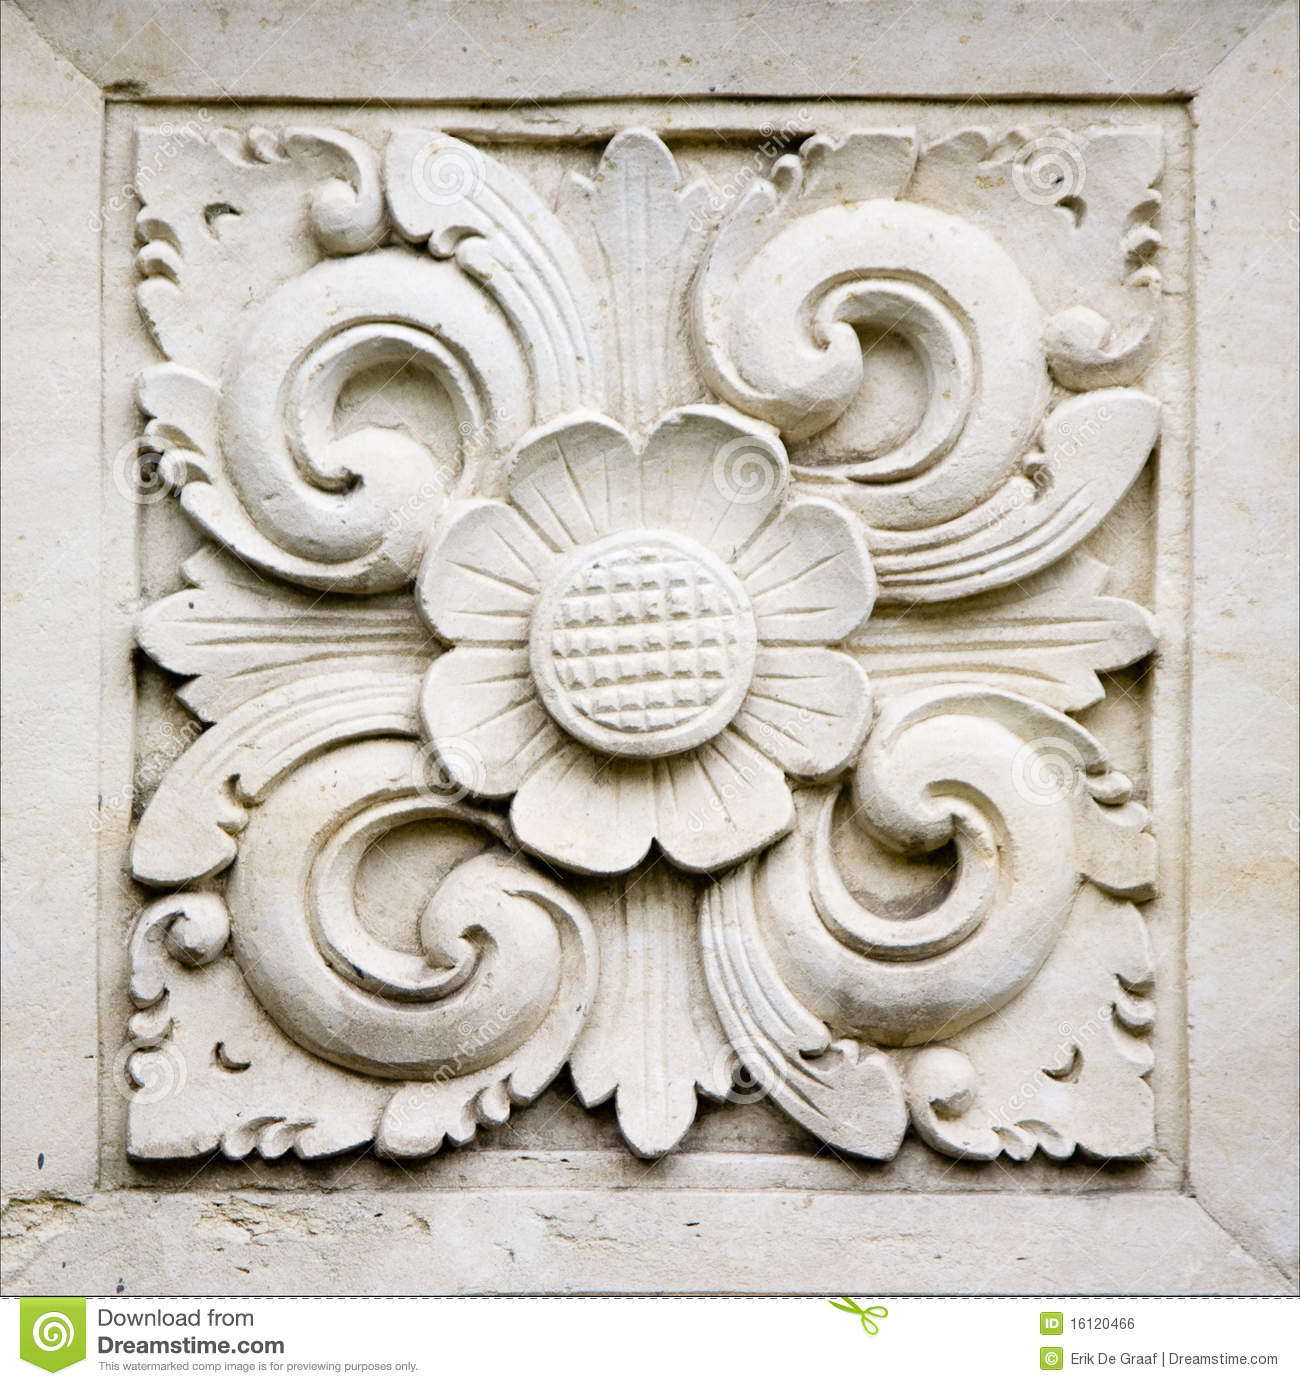 Bali stone carving stock photo image of sandstone symbol